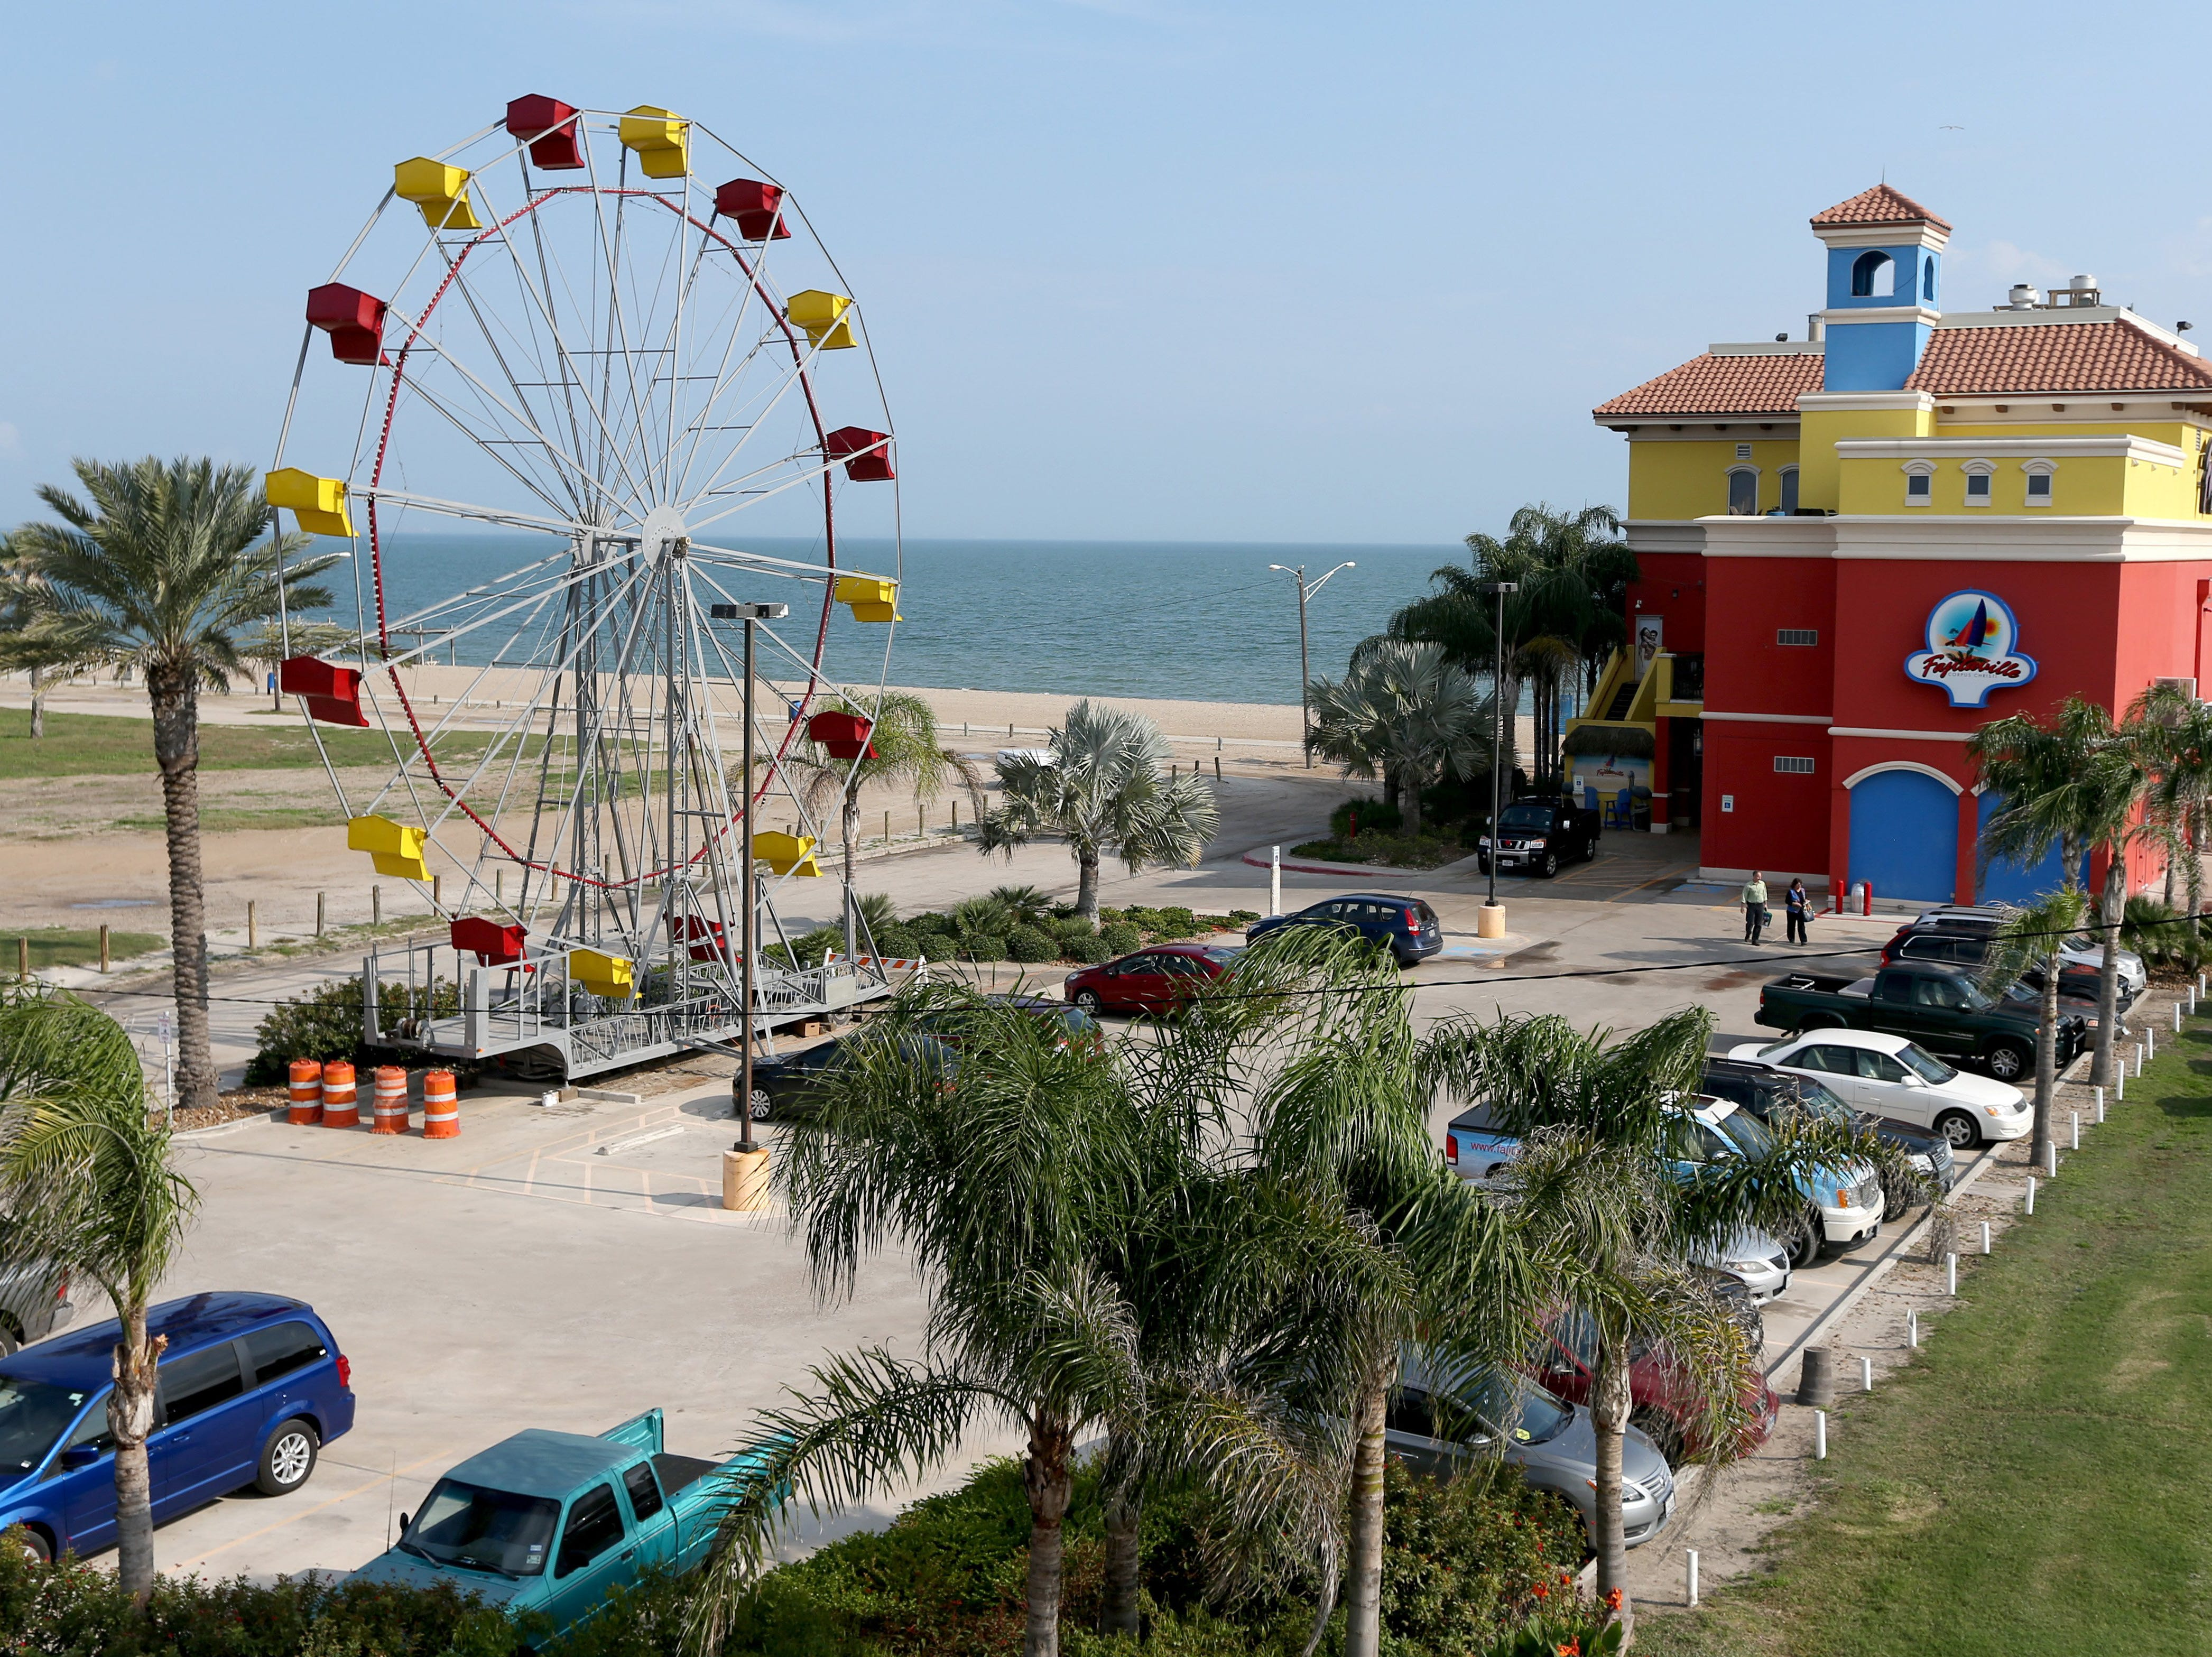 Fajitaville owners had recently installed a new Ferris wheel in the parking lot of their North Beach restaurant in Corpus Christi when this image was shot Thursday, Dec. 18, 2014.